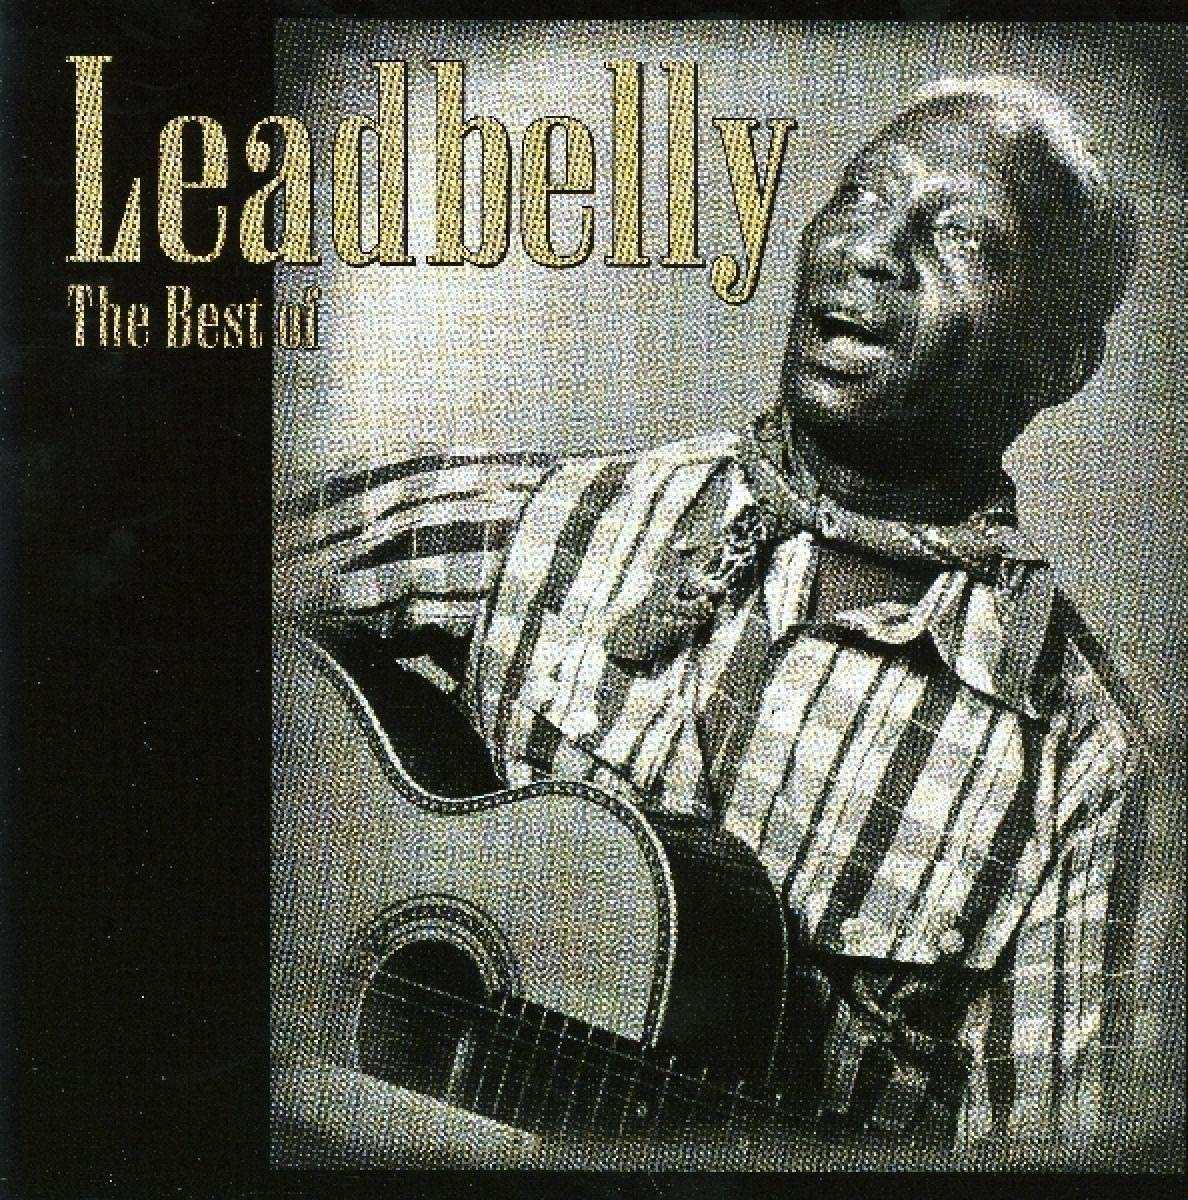 Deluxe Best of: Max 54% OFF LEADBELLY